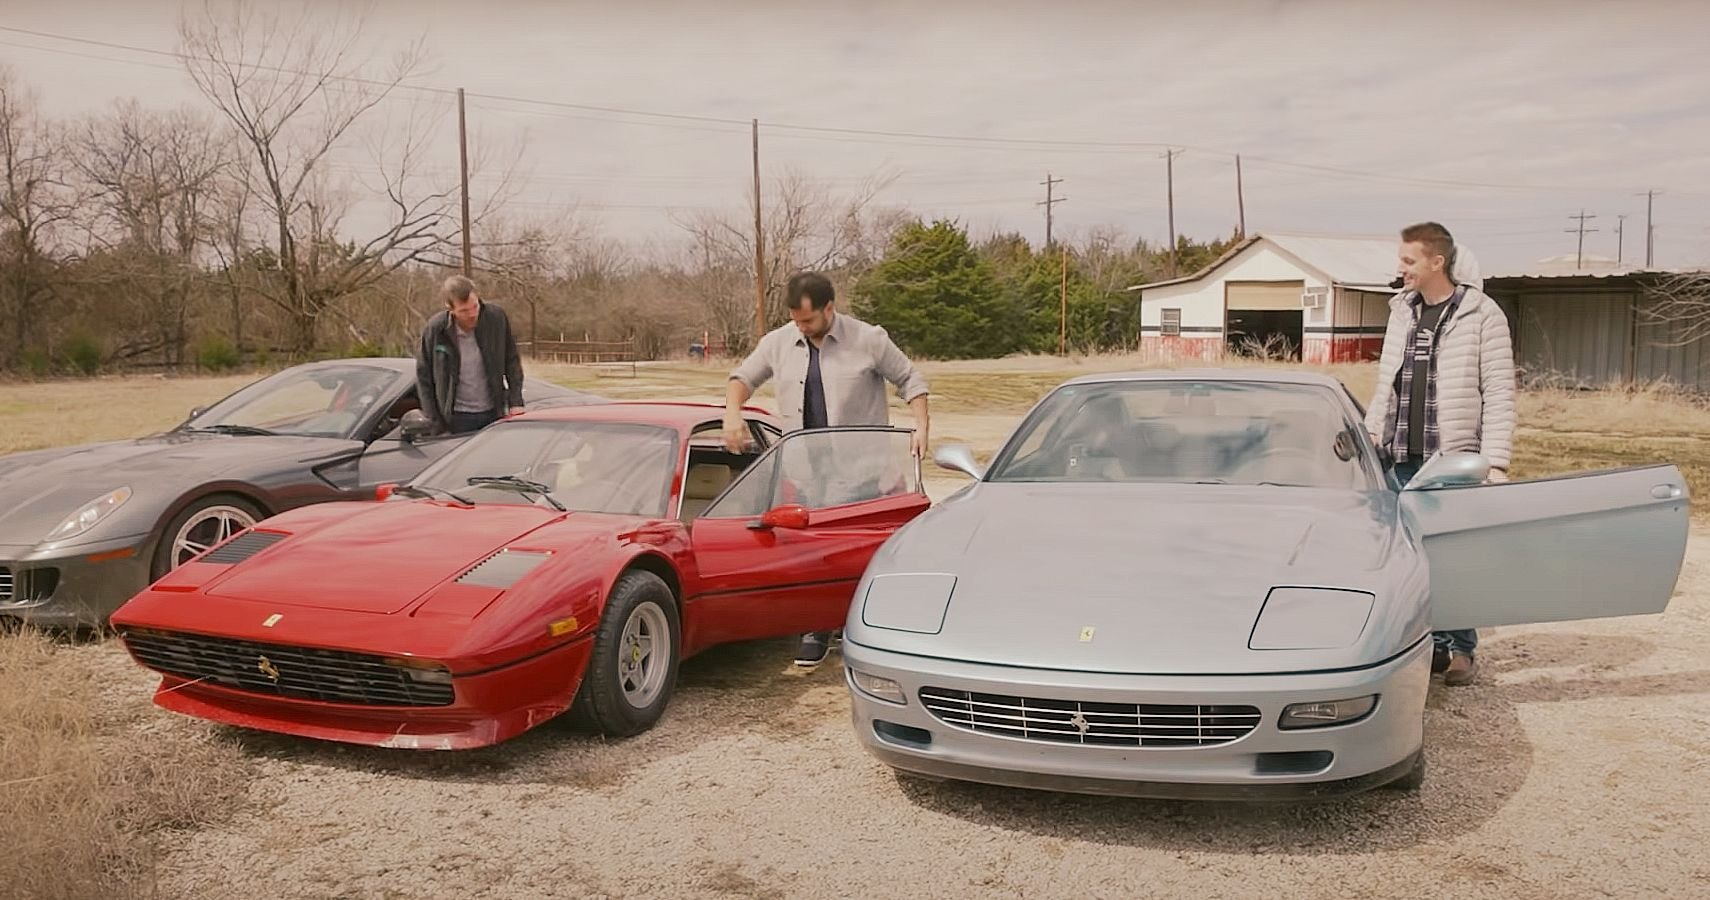 These Dirt-Cheap Ferraris Are More Trouble Than They're Worth